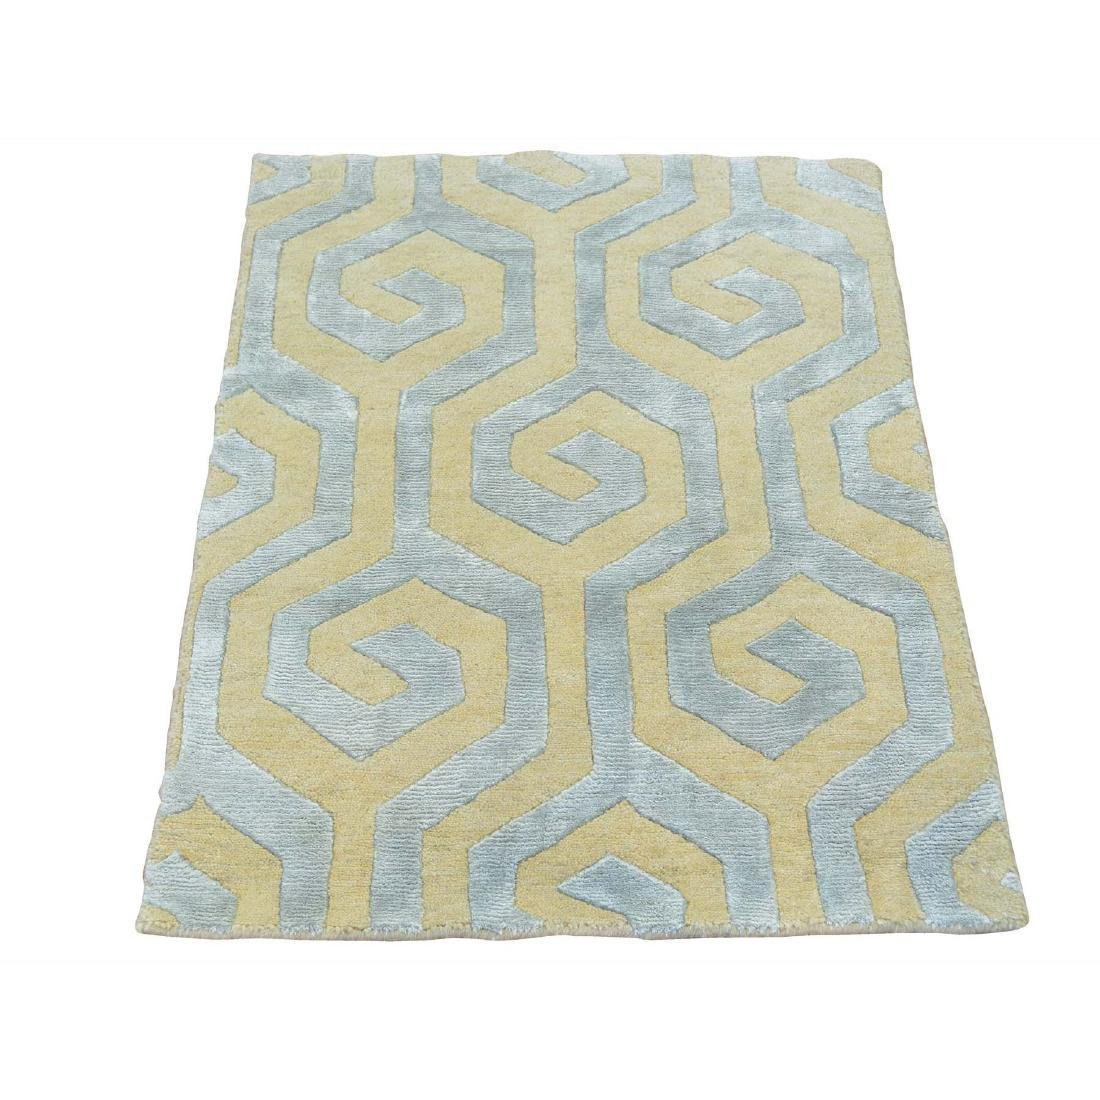 Wool and Silk Modern Rug Geometric Design Hand 2x2.10